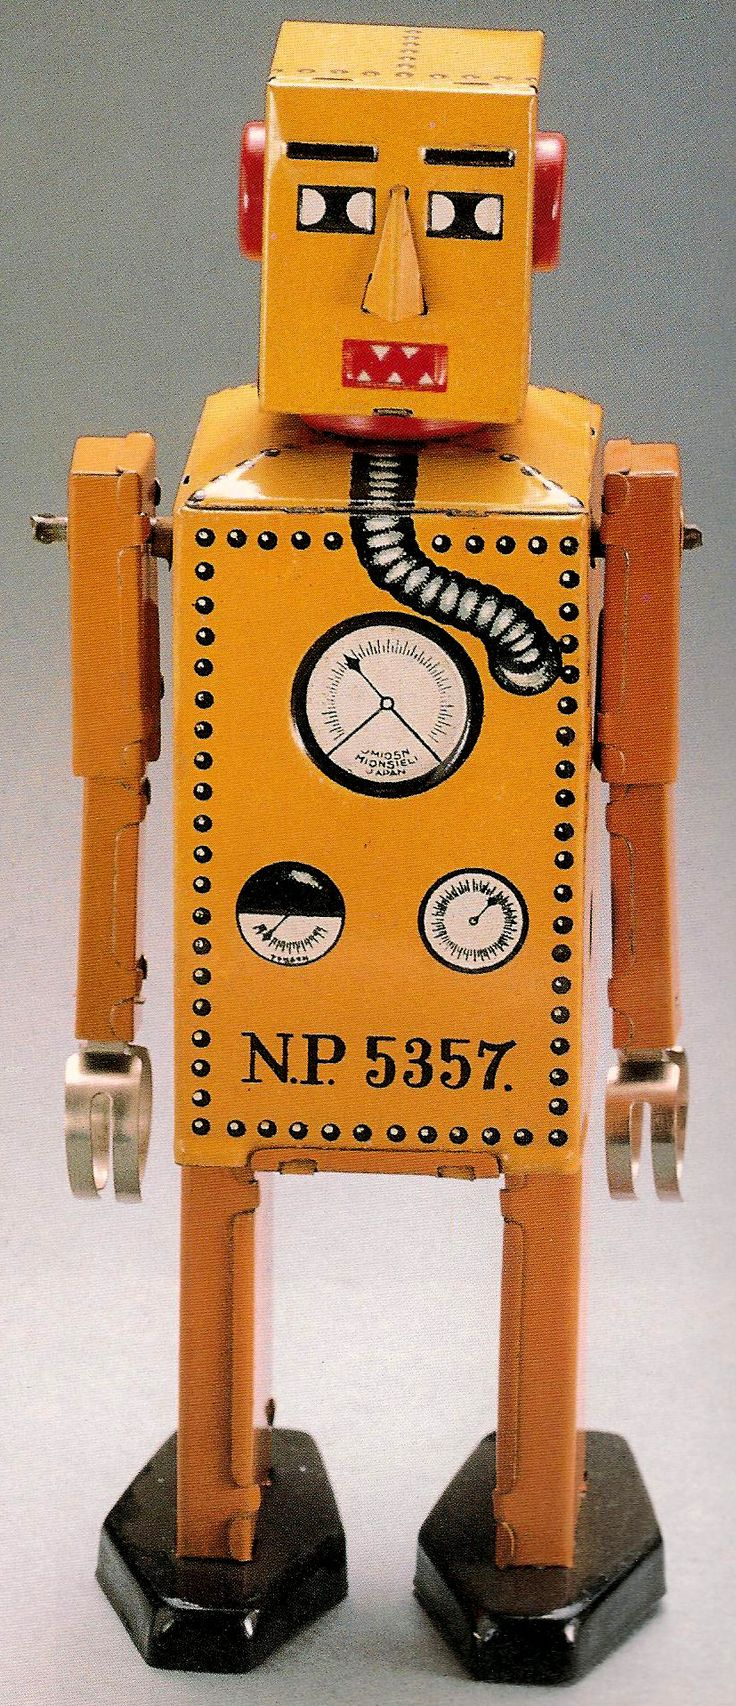 Lilliput was the first tin toy robot made in Japan